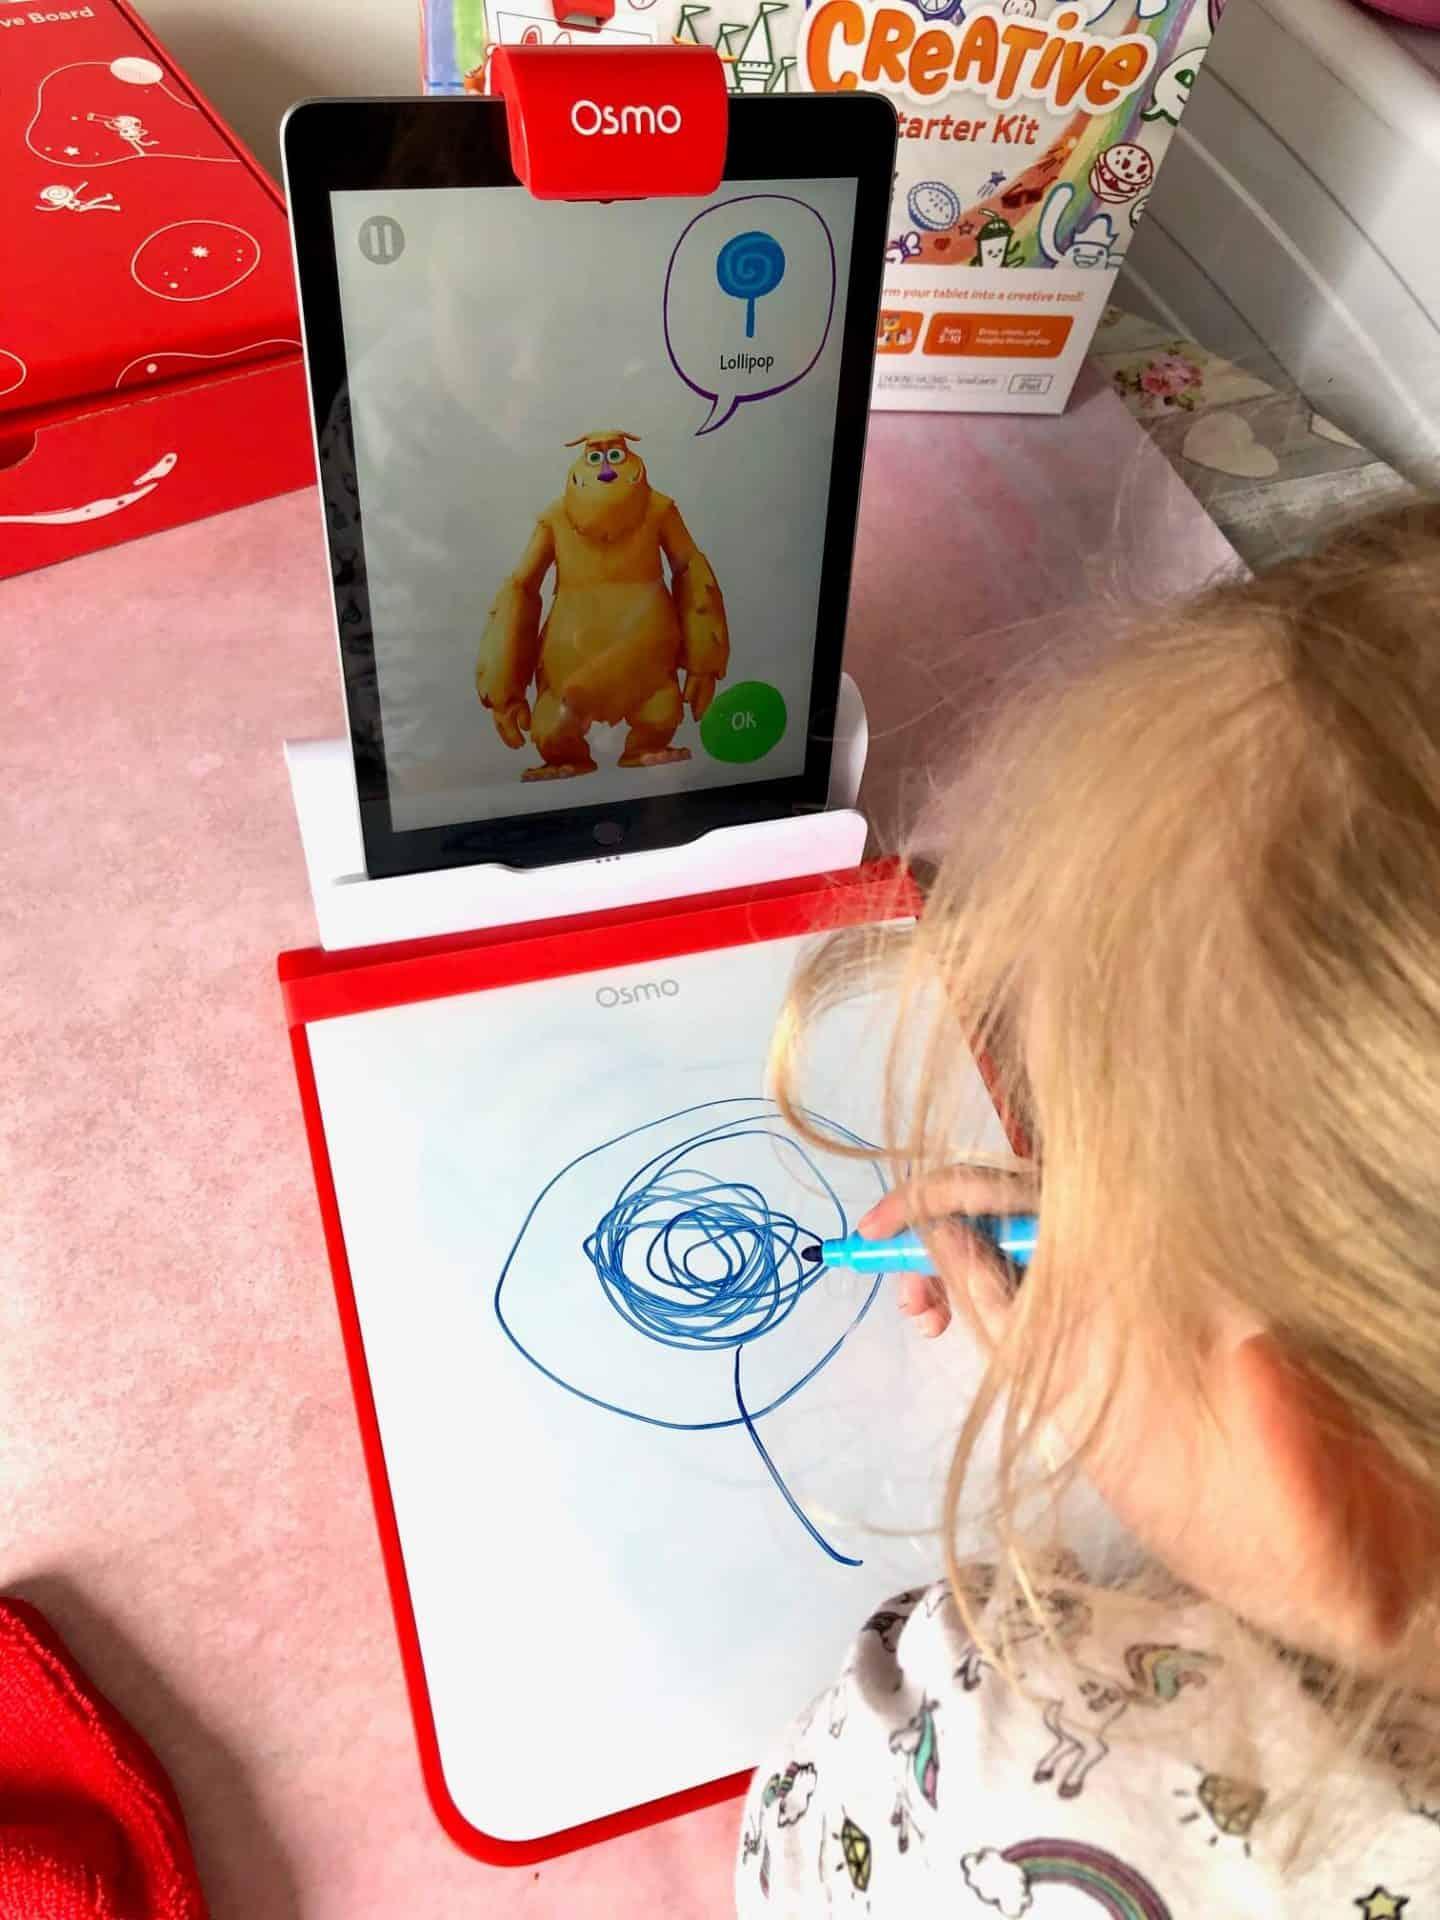 Drawing with Osmo Creative Starter Kit